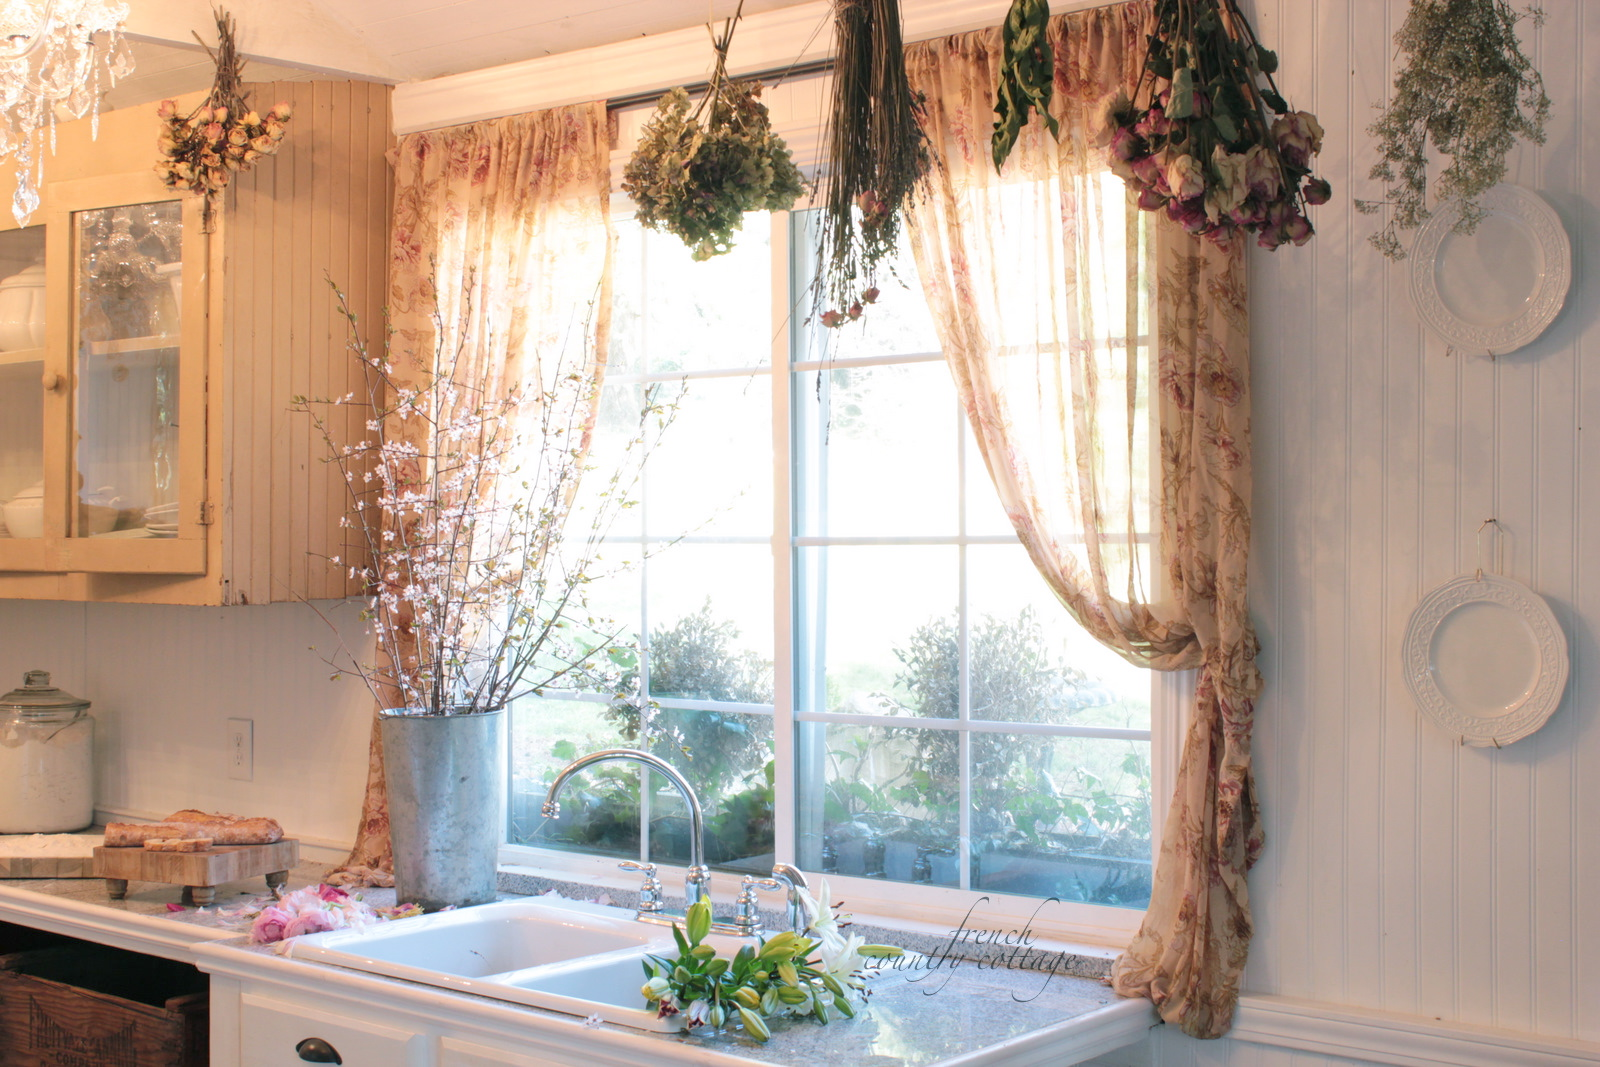 Top Decorating with dried flowers - FRENCH COUNTRY COTTAGE GU08